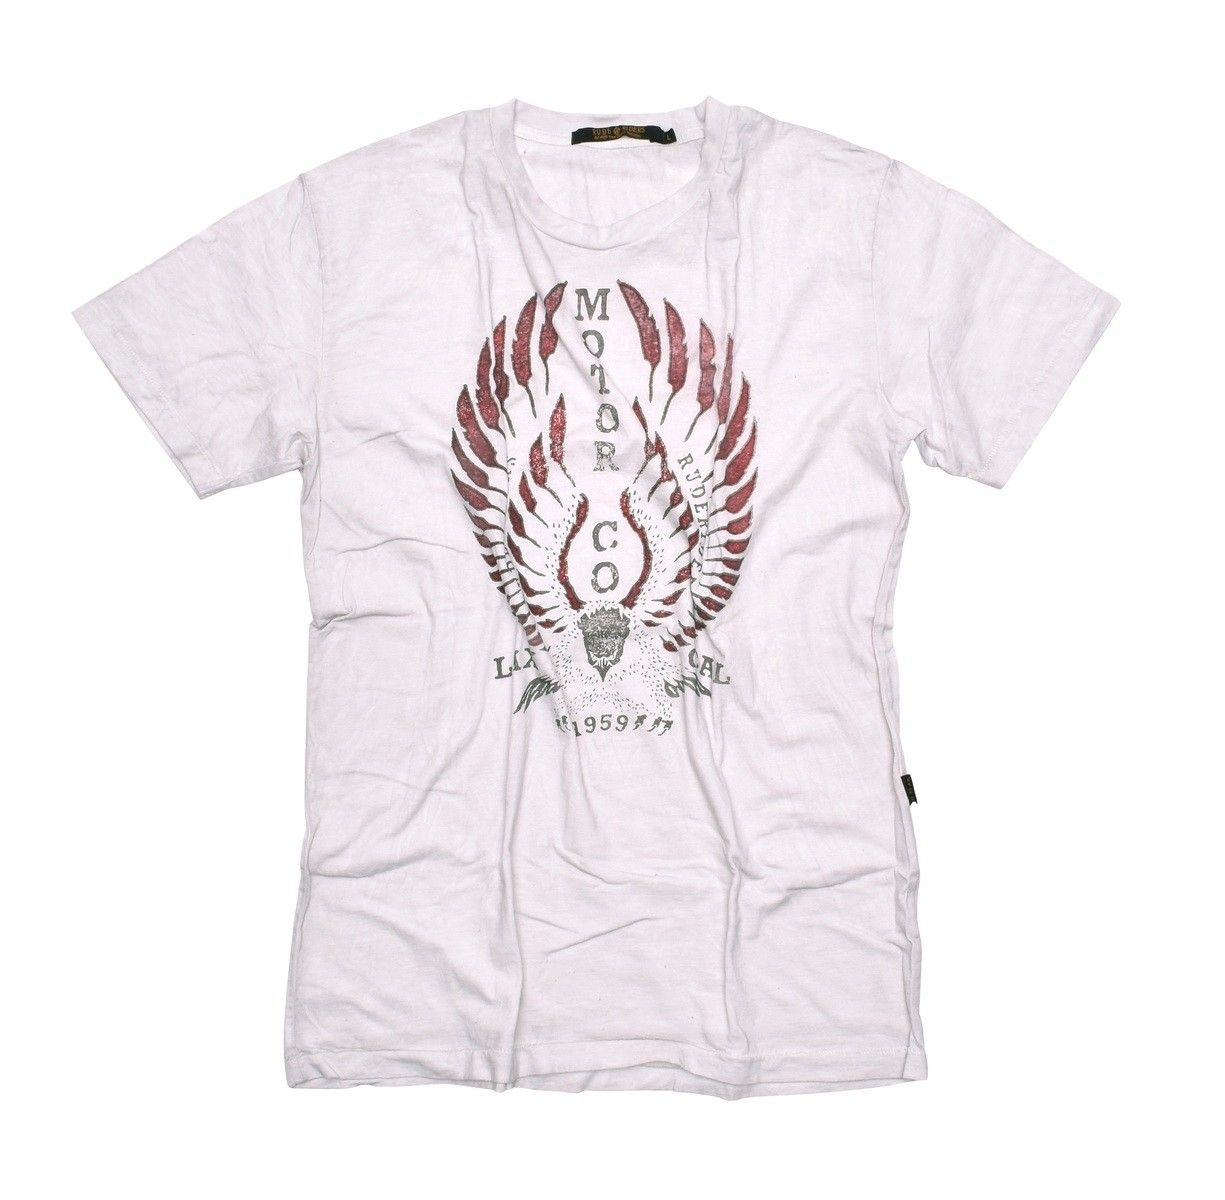 RUDE RIDERS - Herren T-Shirt - Eagle Lax Cal - off white -